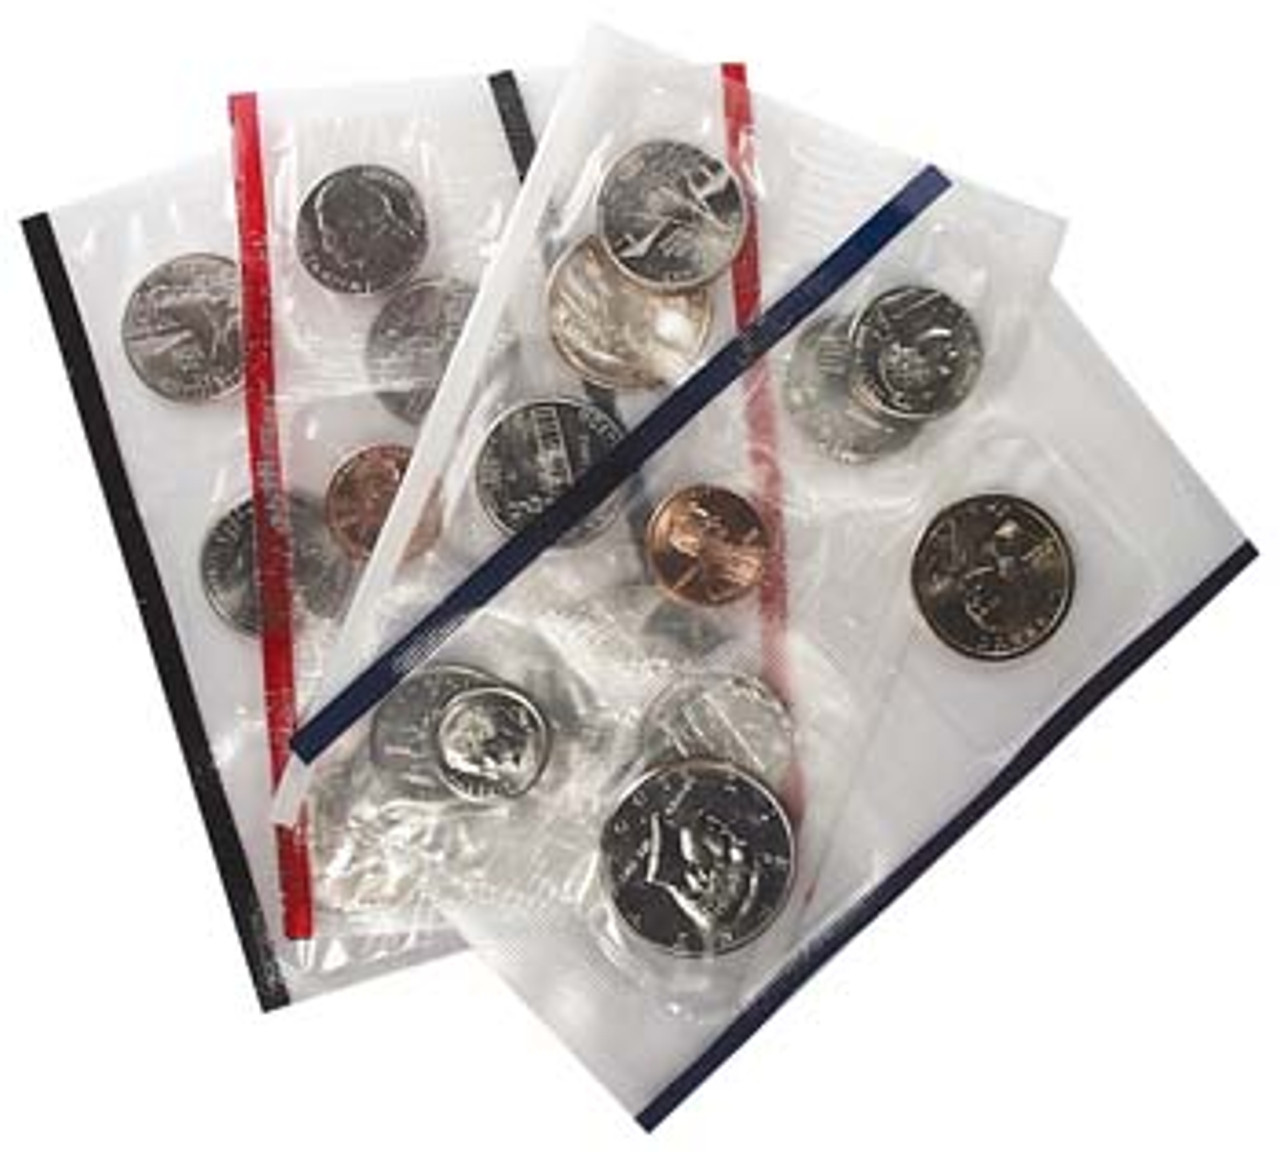 2001 Mint Set 20 Coins Image 1